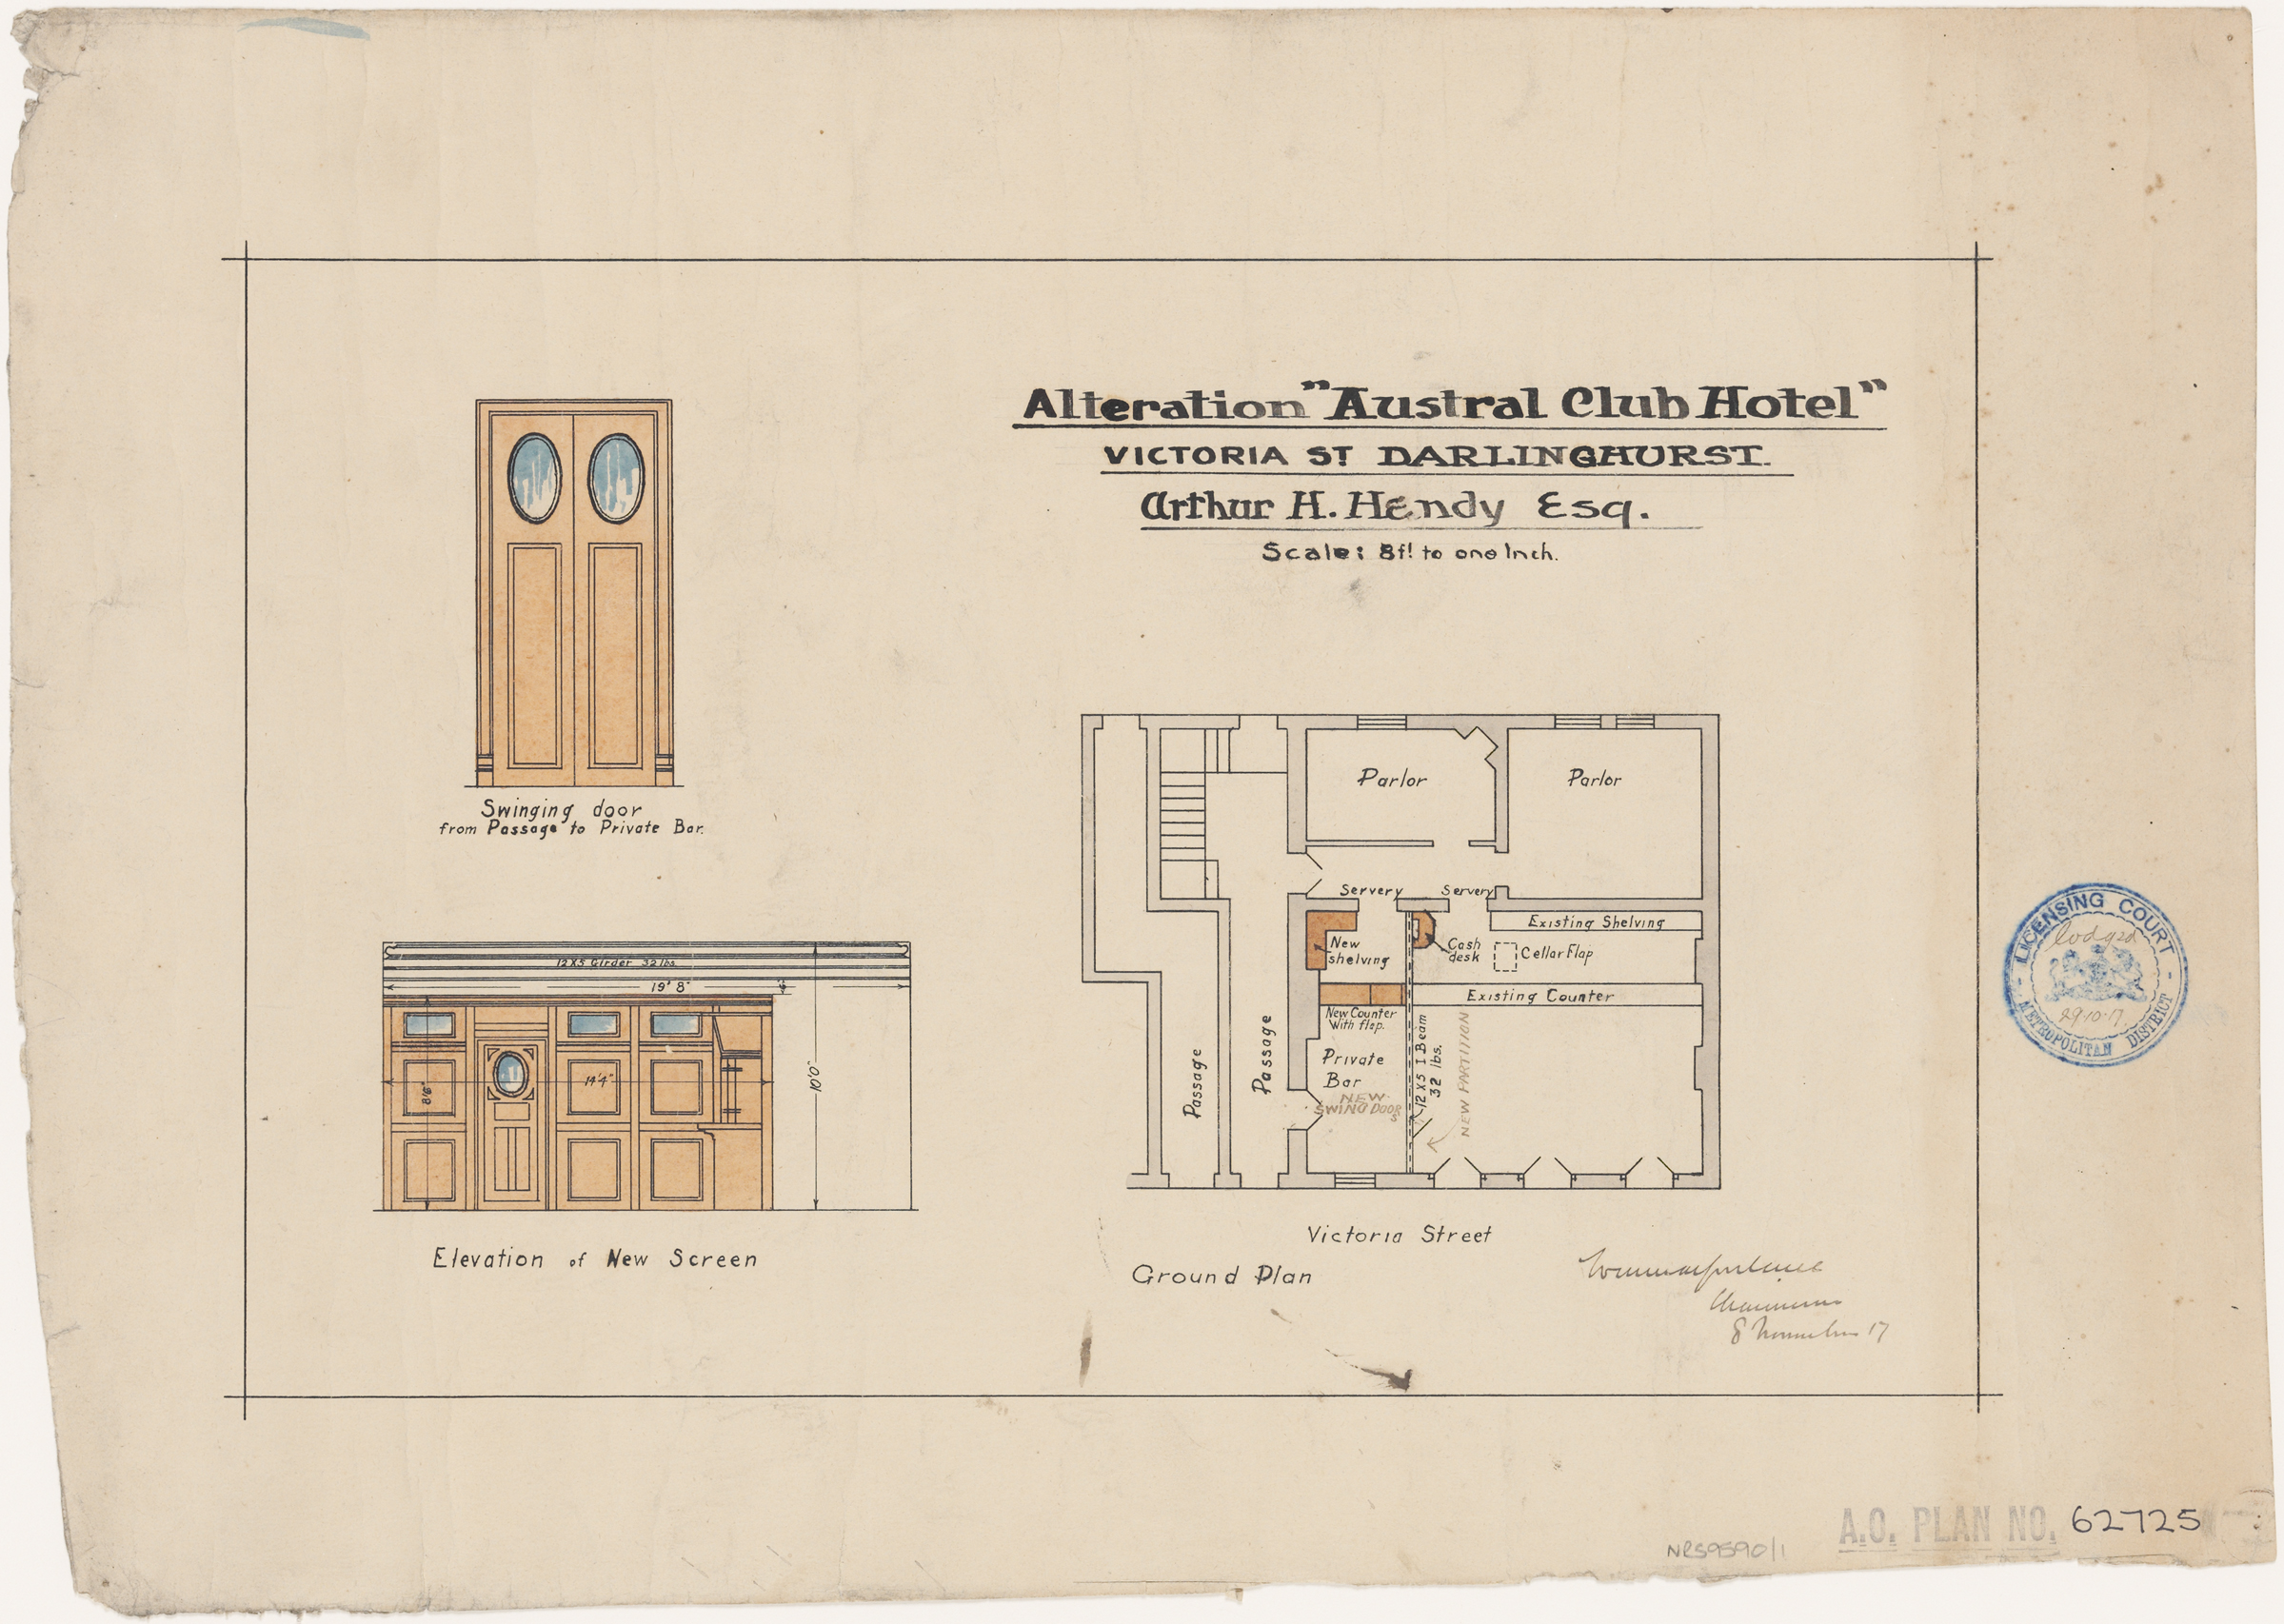 Austral Club Hotel, Victoria Street, Darlinghurst, Alterations, ground floor plan, elevation of new screen, swinging door from passage to private bar, Applicant/owner, Arthur H Hendy Esquire Architect Application lodged 29 October 1917, granted 8 November 1917